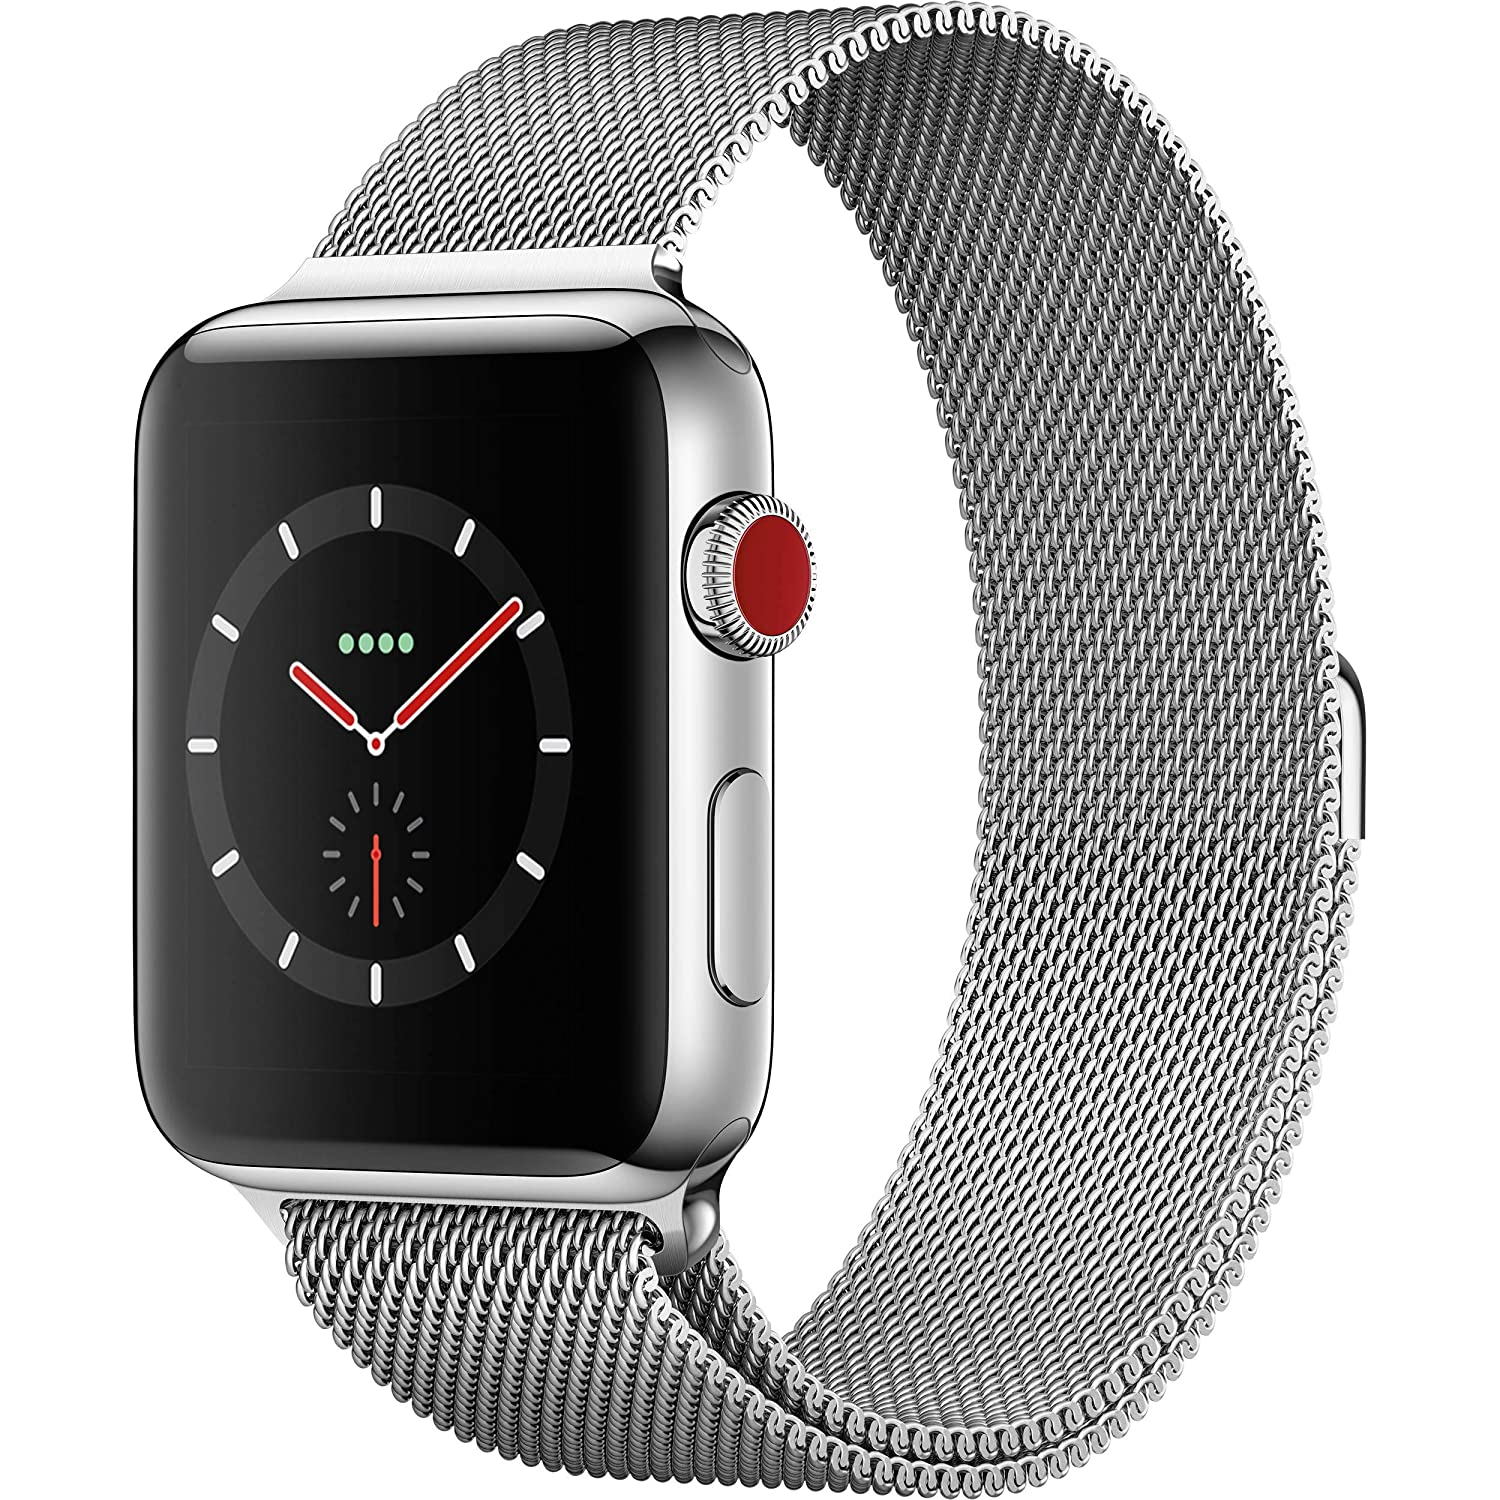 Apple Watch Series 3 42mm Smartwatch (GPS + Cellular, Silver Stainless Steel Case, Stainless Steel Milanese Band) (Renewed)